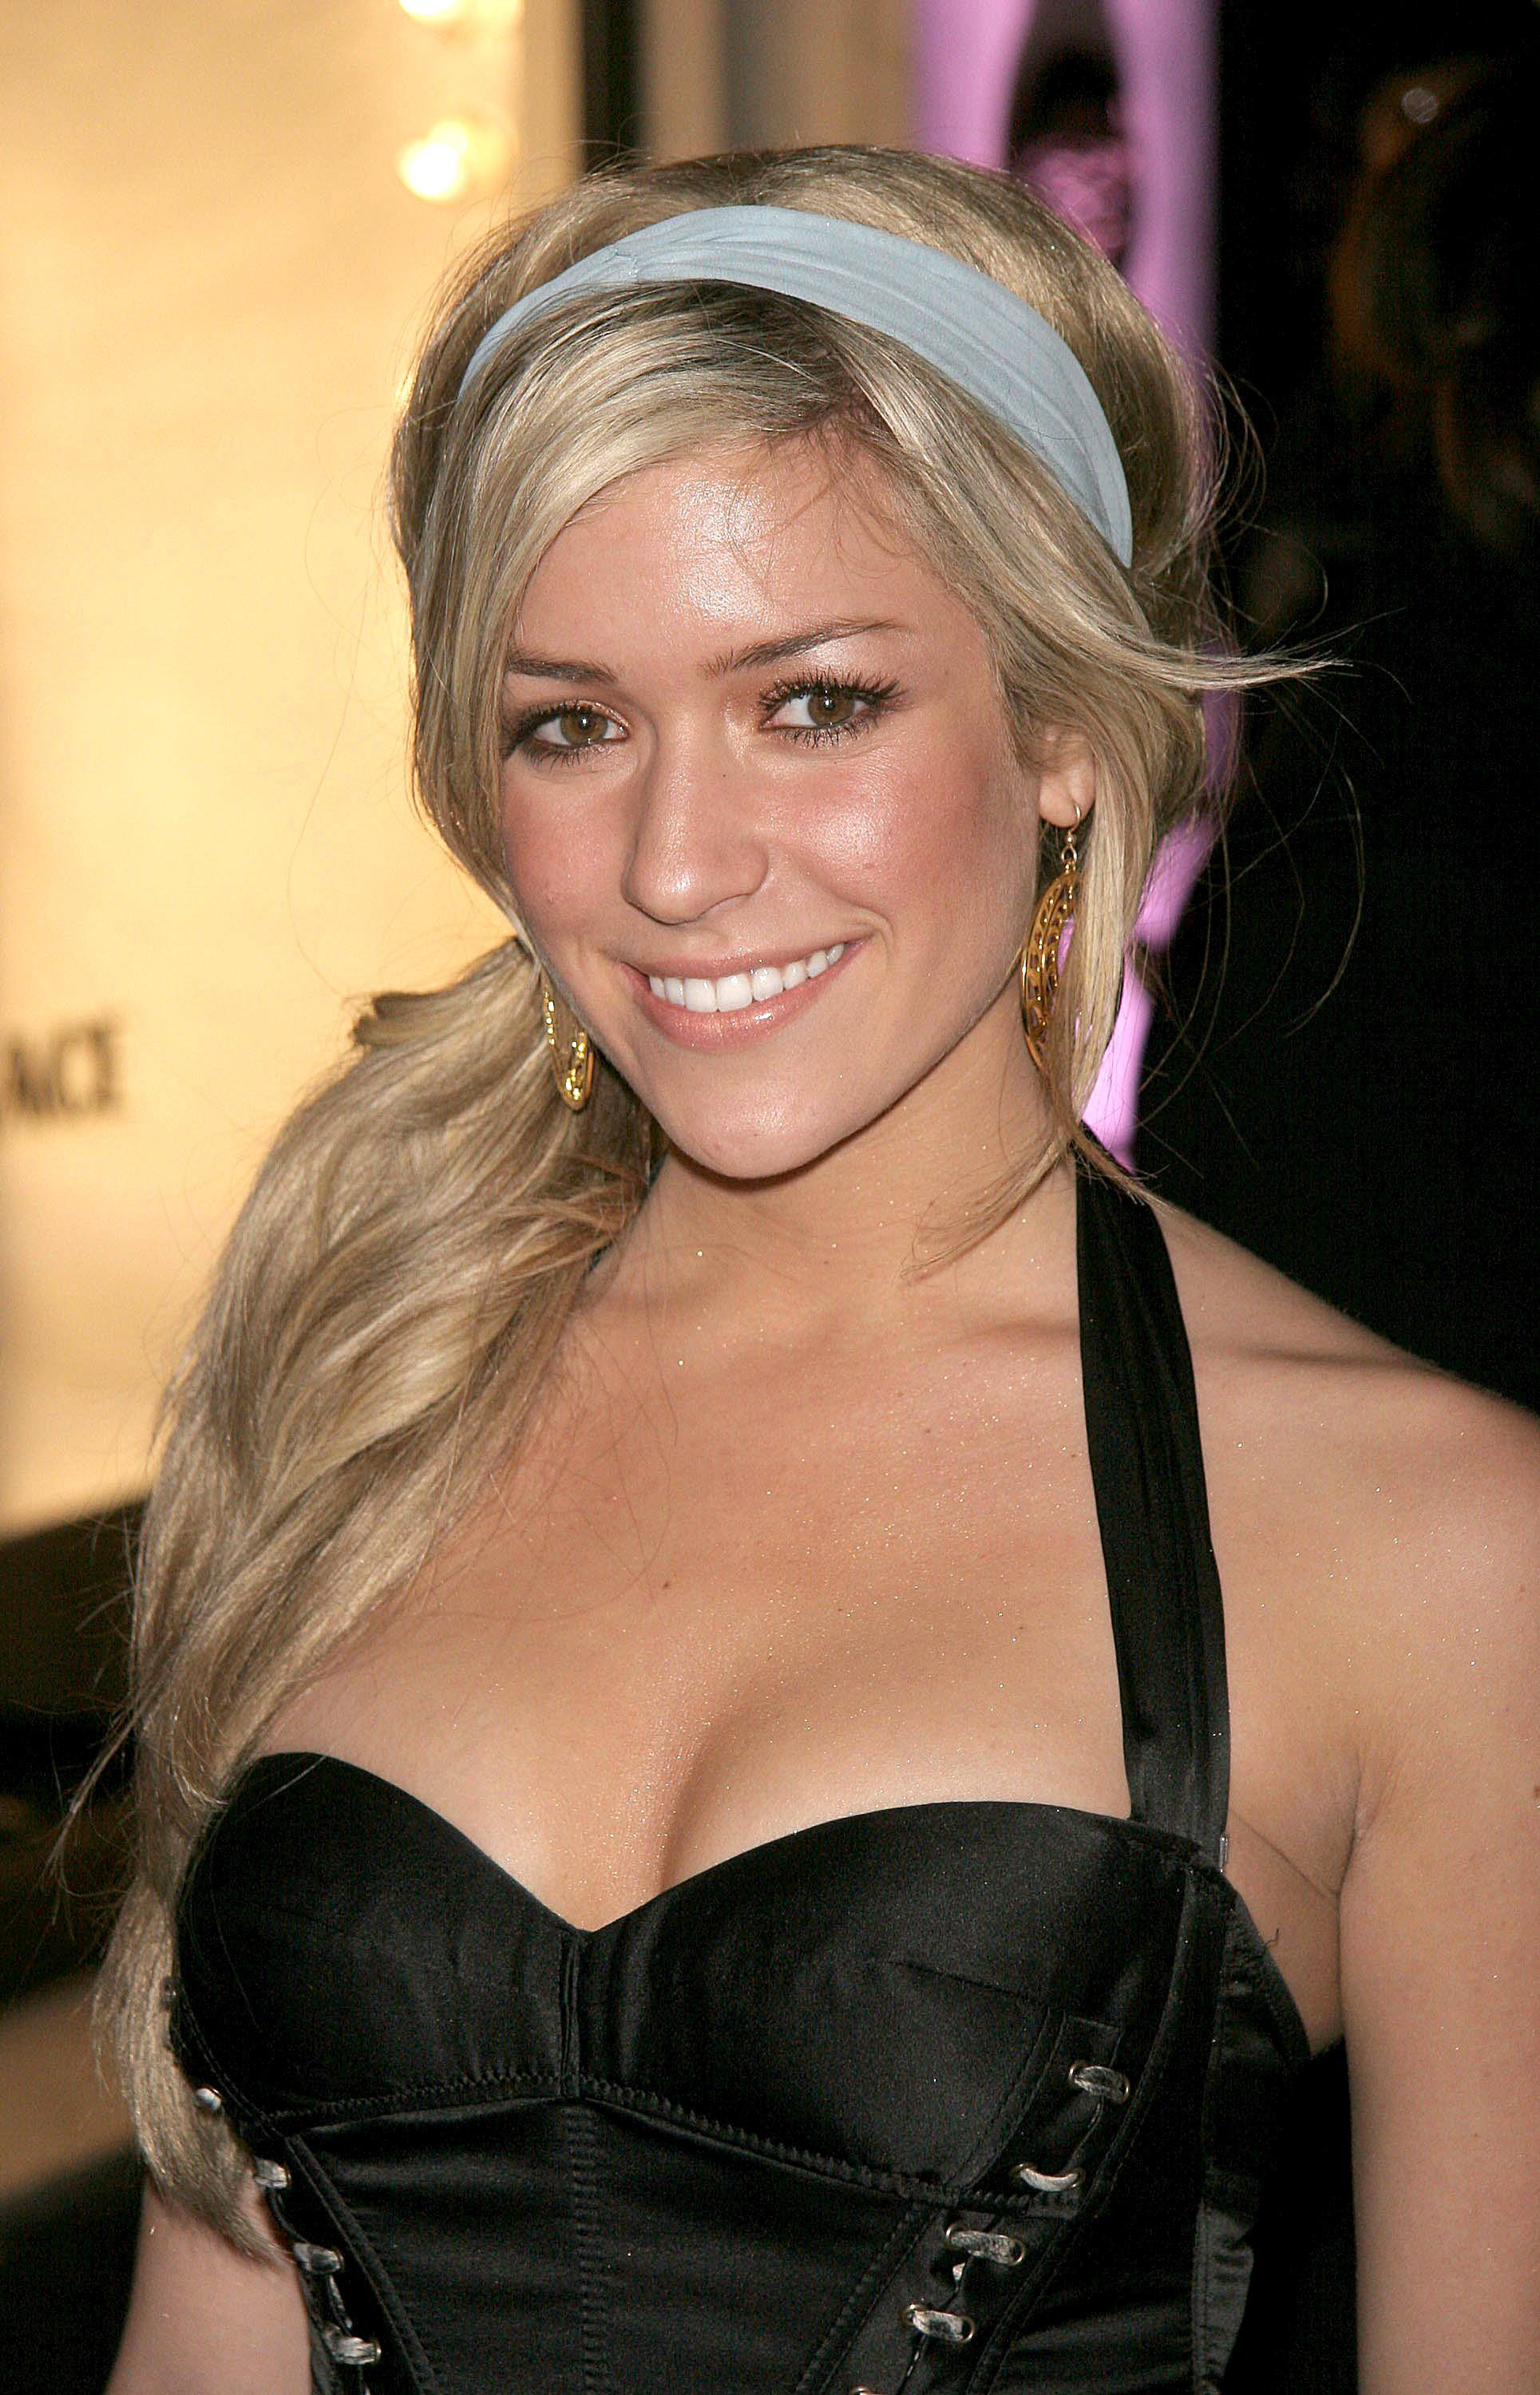 Kristin Cavallari from MTV's The Hills with her creamy blonde hair in a wavy low side ponytail with a grey headband